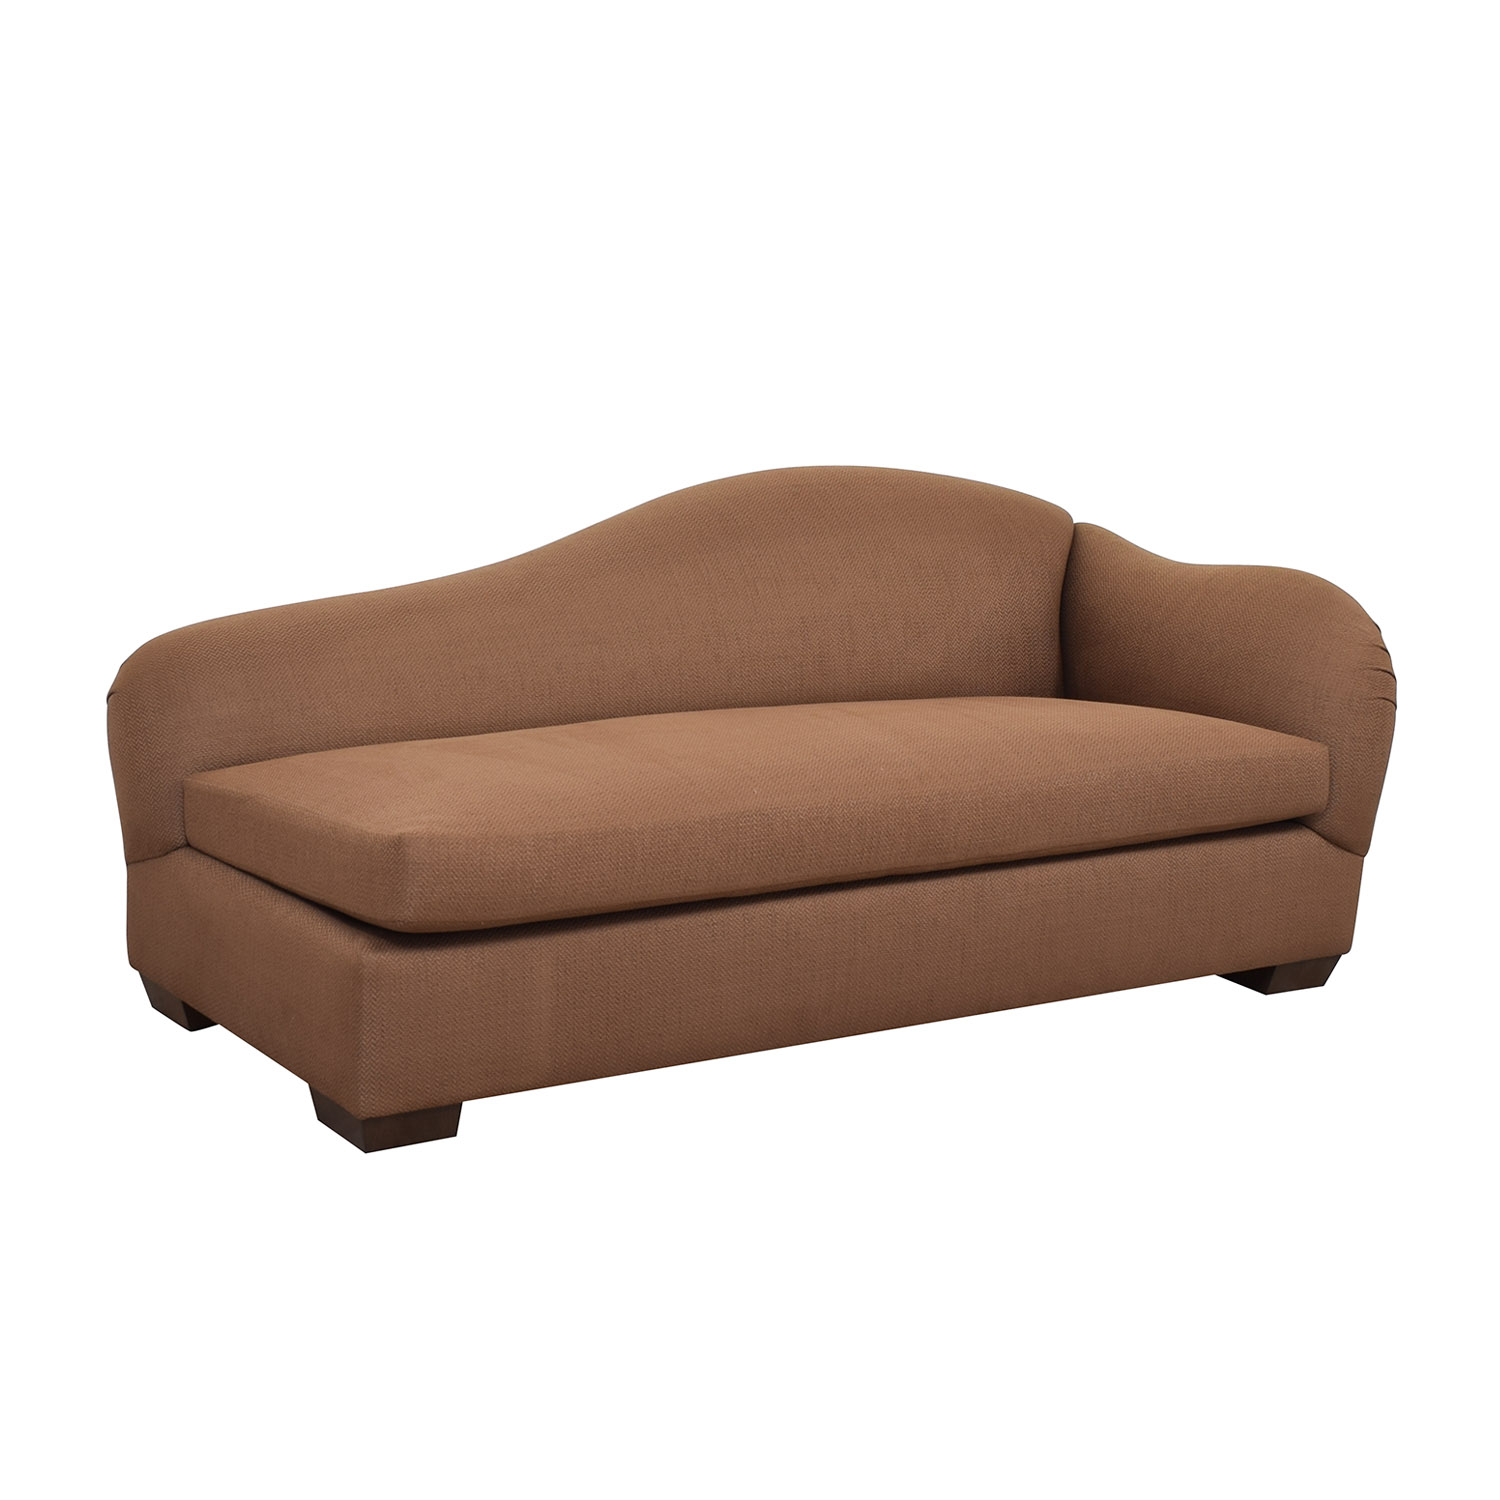 Furniture Masters Brown Chaise Lounge sale